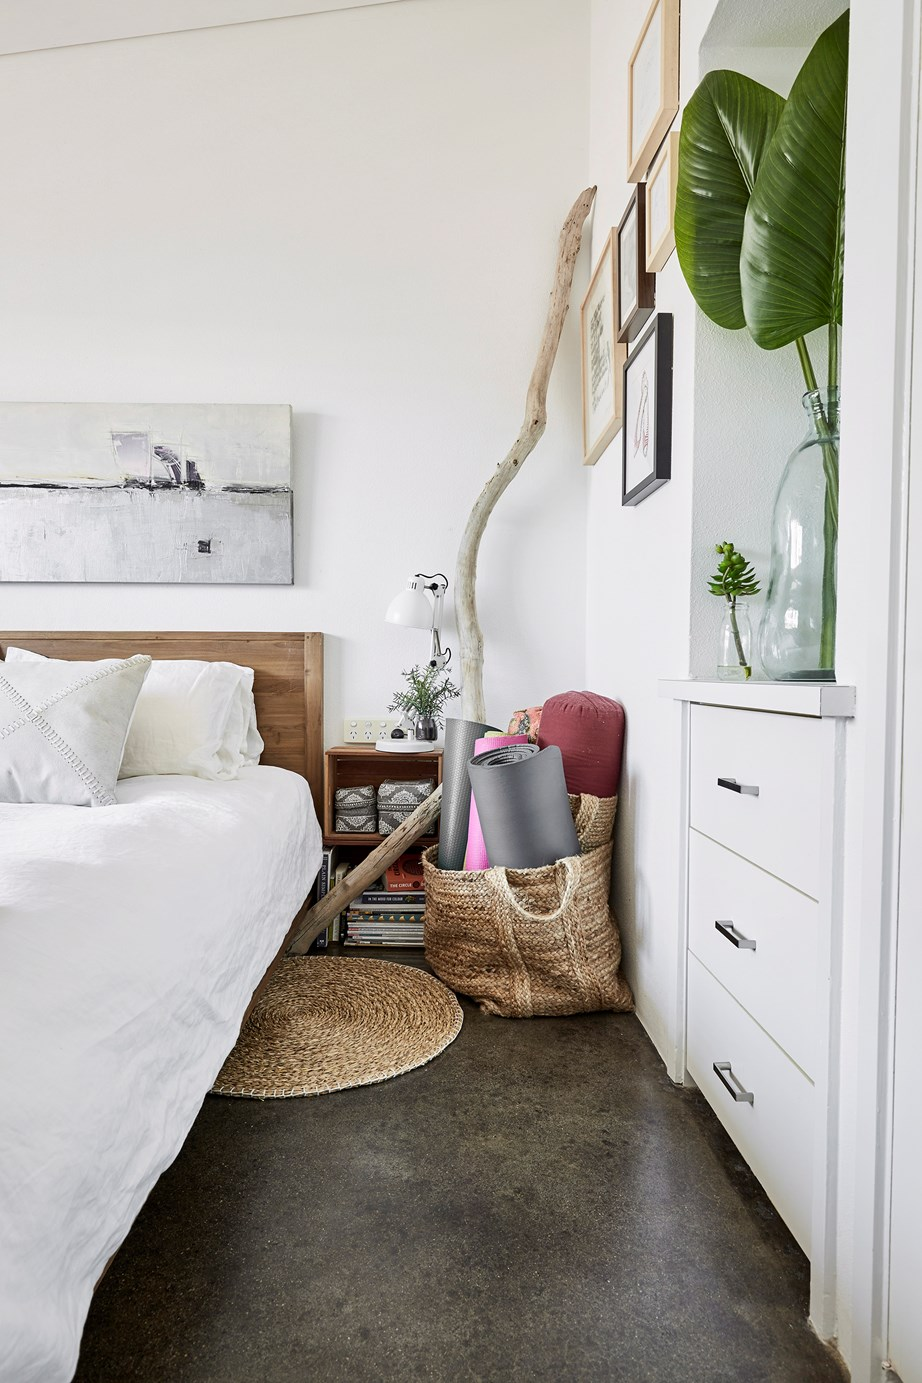 "Clutter can build up easily around the house, particularly in areas that are filled with lots of fiddly bits and pieces, like bedrooms, cupboards and work areas. Sometimes, simplicity is the key and all that's required is a few [small storage baskets](https://www.homestolove.com.au/storage-baskets-13356|target=""_blank"") to keep everything neat and ordered. <br><br> **Buy:** Rope and jute stripe basket with handles, $12, [Kmart](https://www.kmart.com.au/product/rope-and-jute-stripe-basket-with-handles/2609808